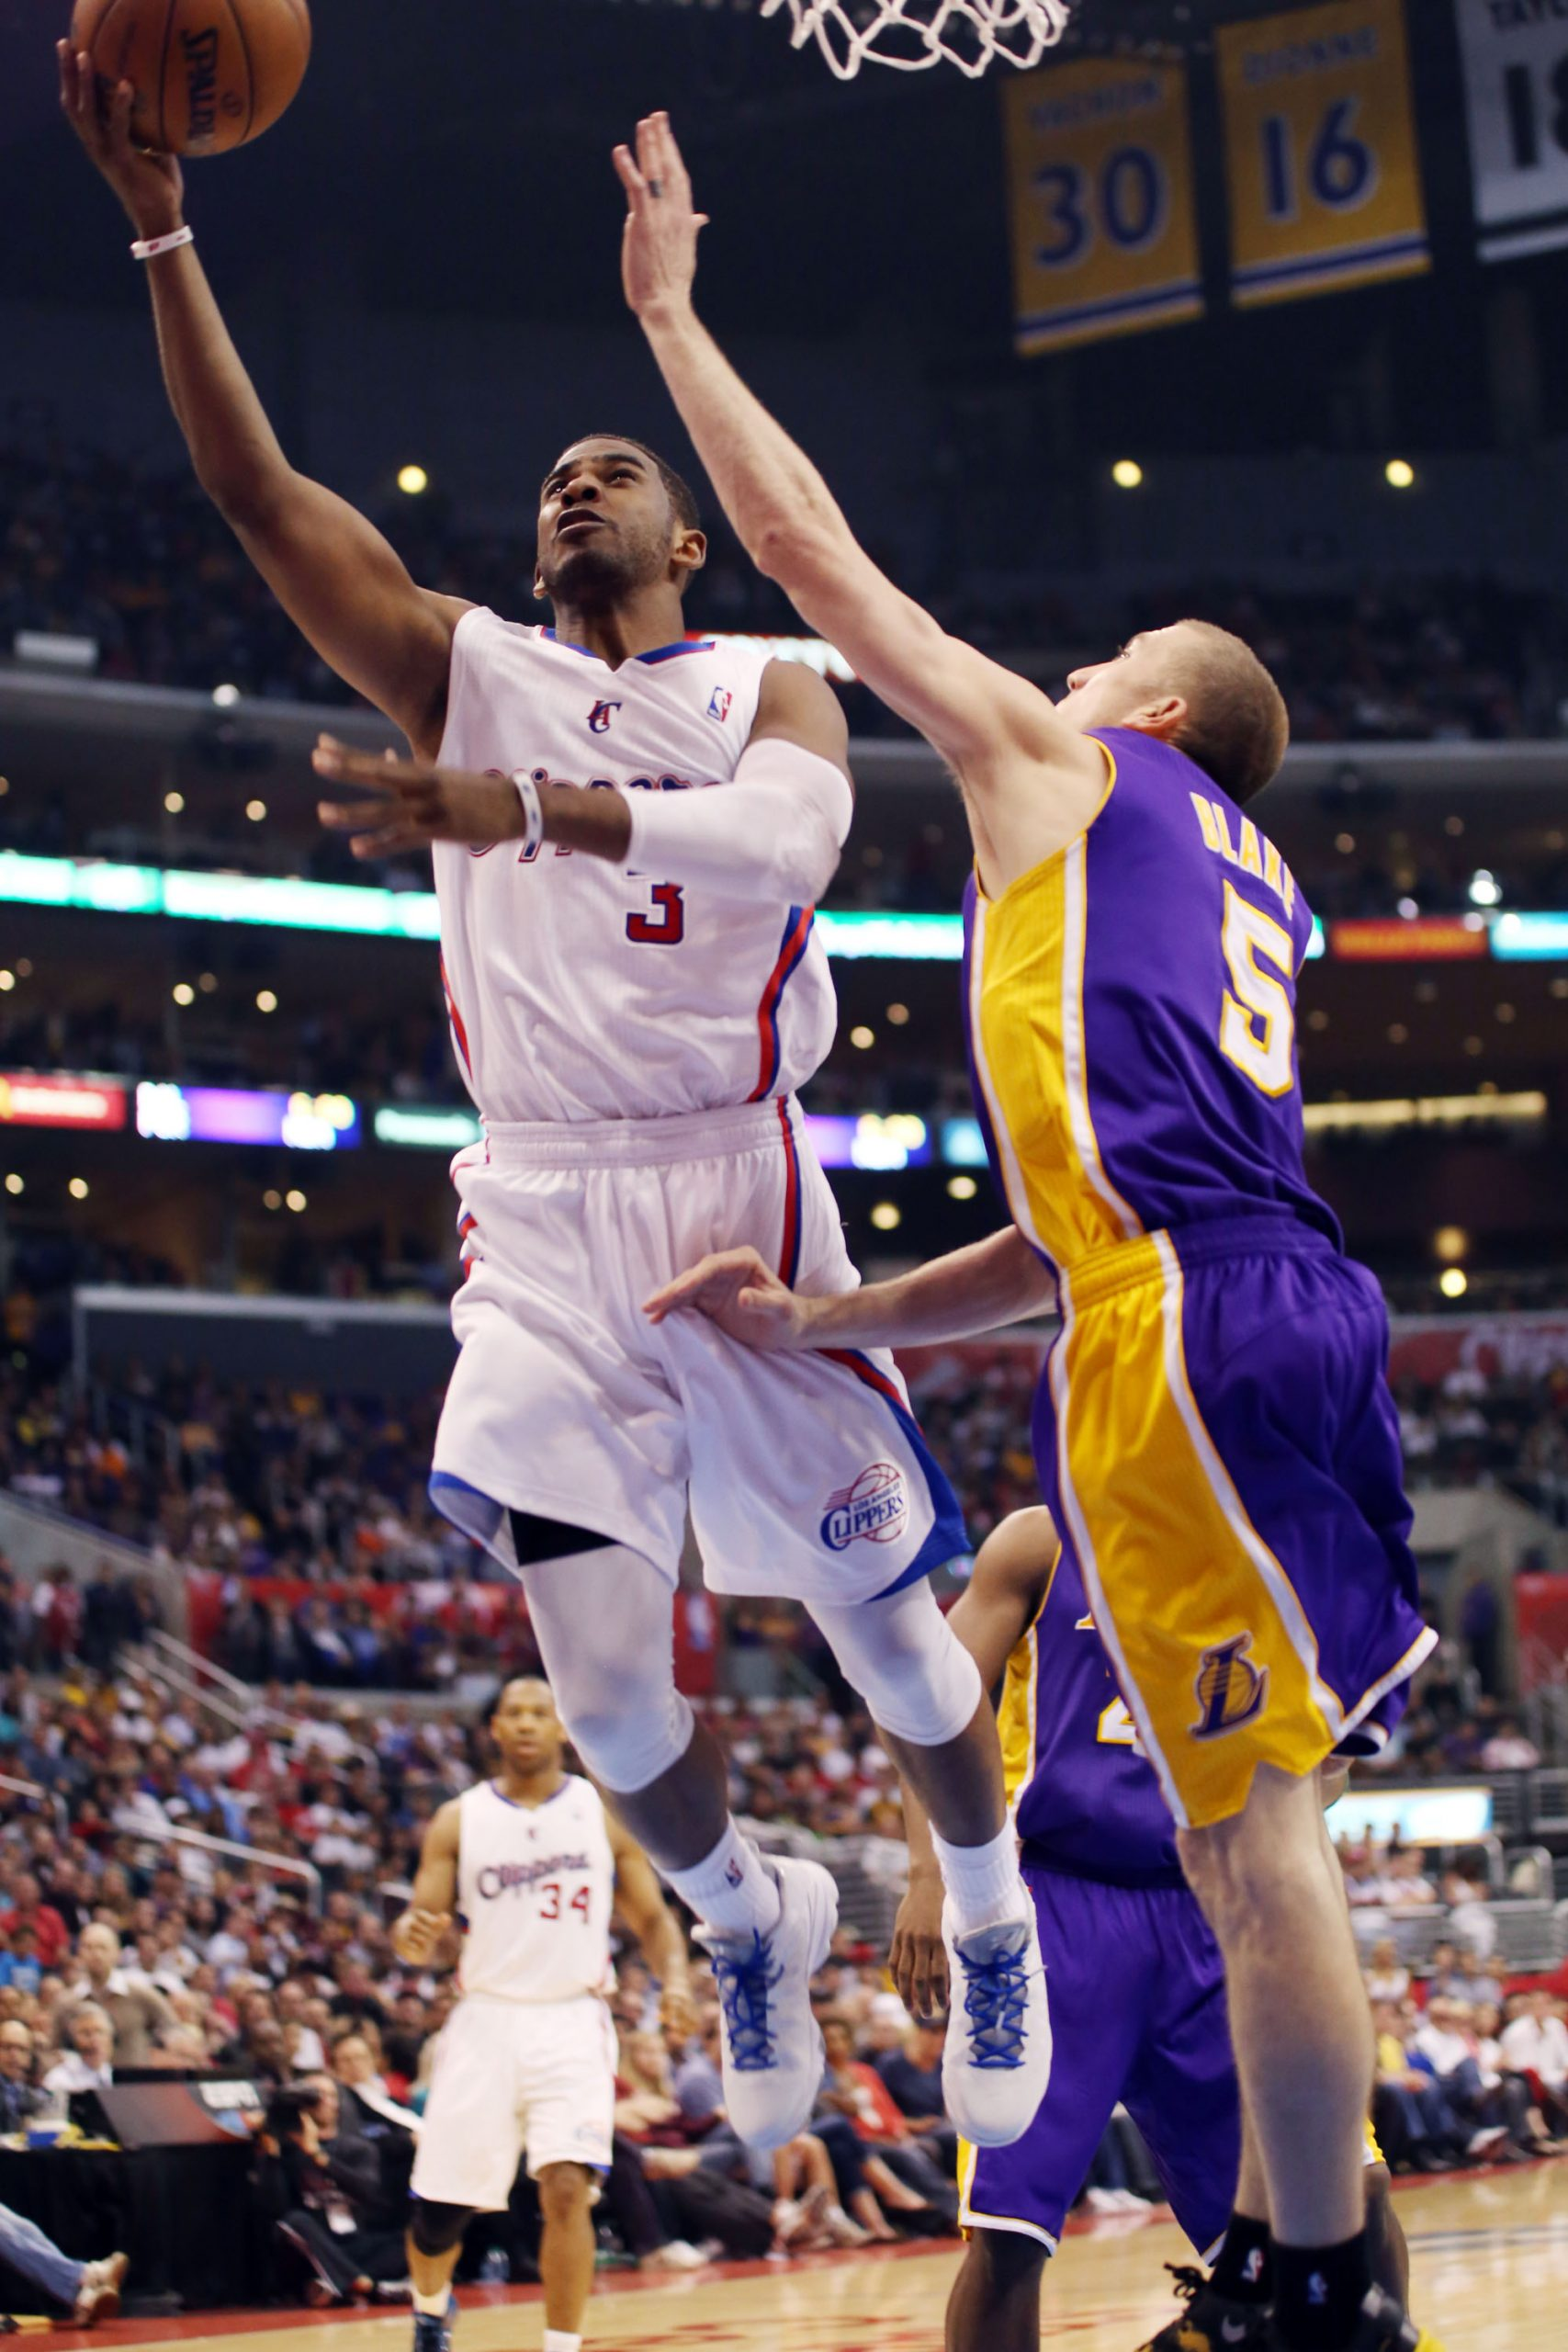 LOS ANGELES-Futility and apathy used to describe the Los Angeles Clippers. Not anymore. These days the potential for greatness is...